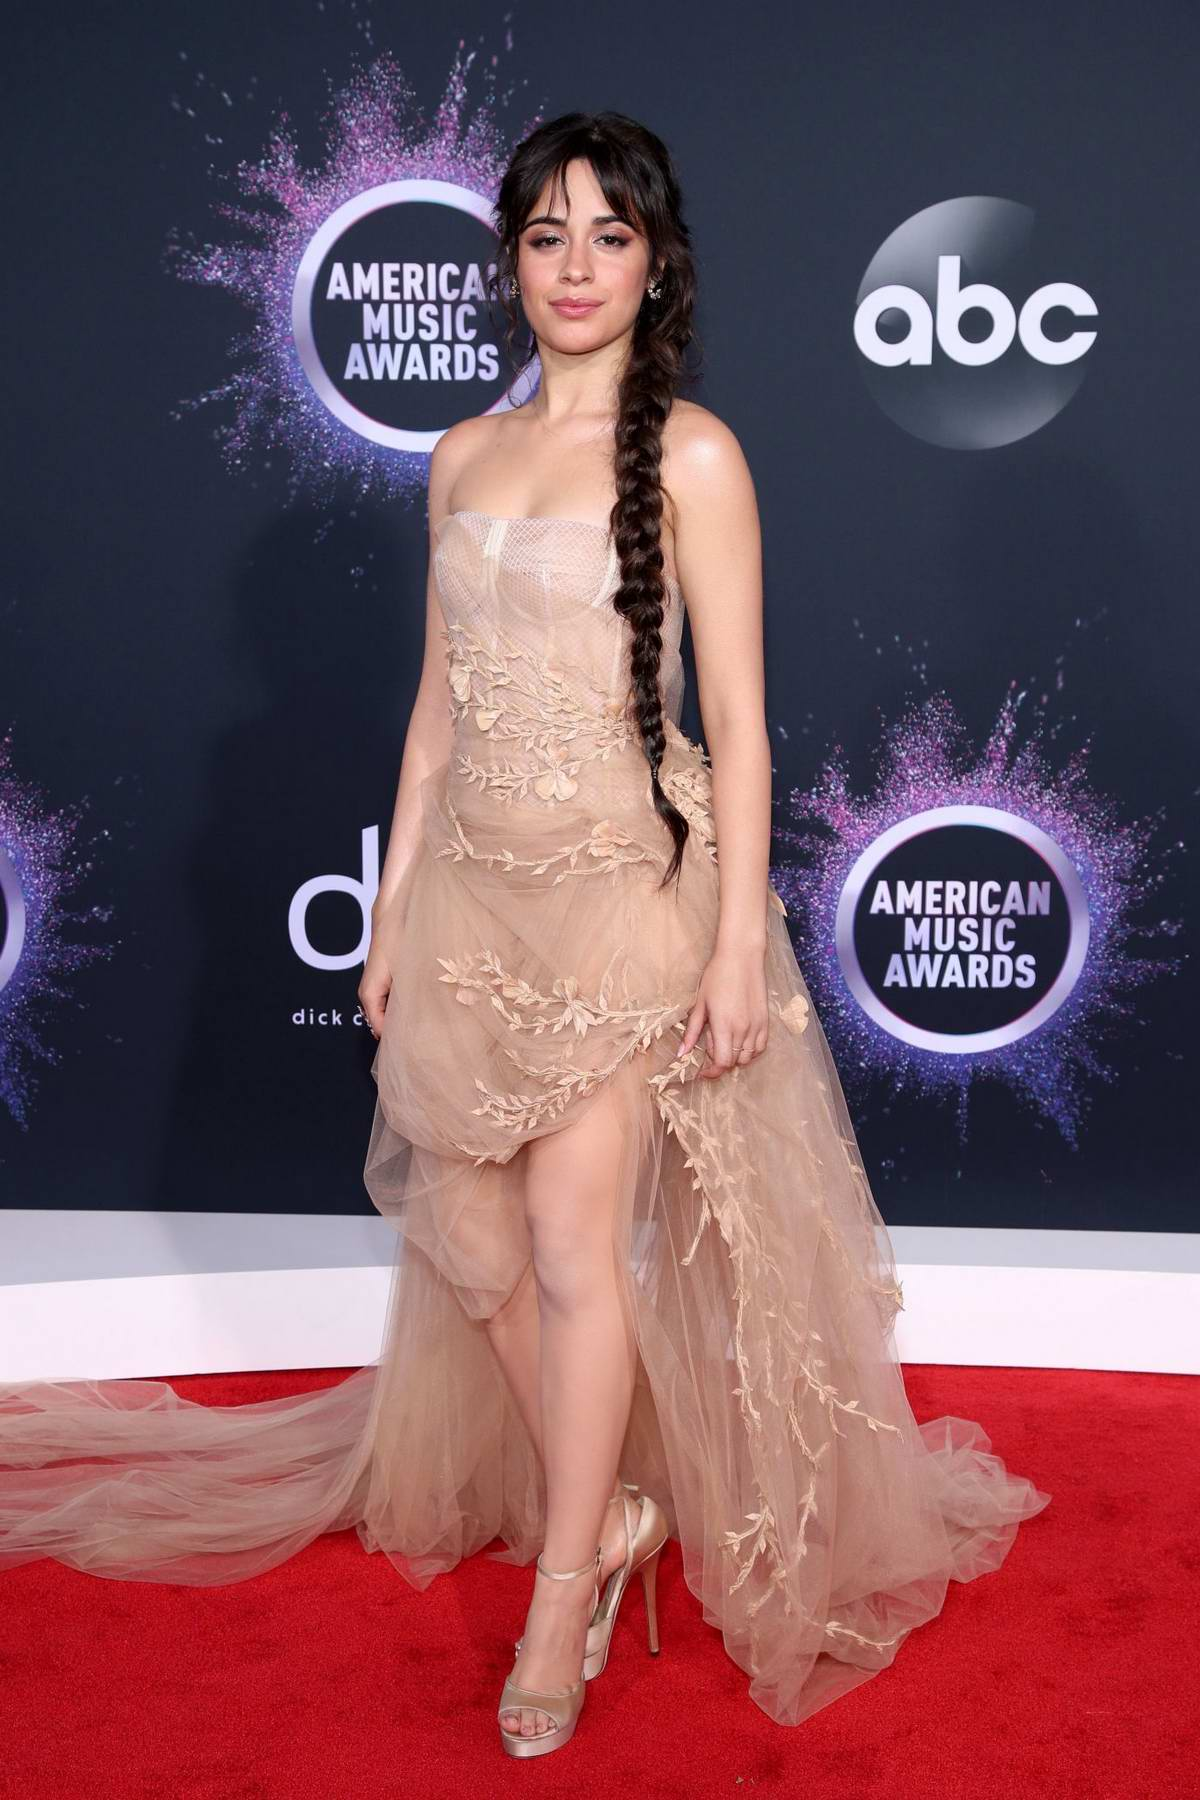 Camila Cabello attends the 2019 American Music Awards at Microsoft Theater in Los Angeles